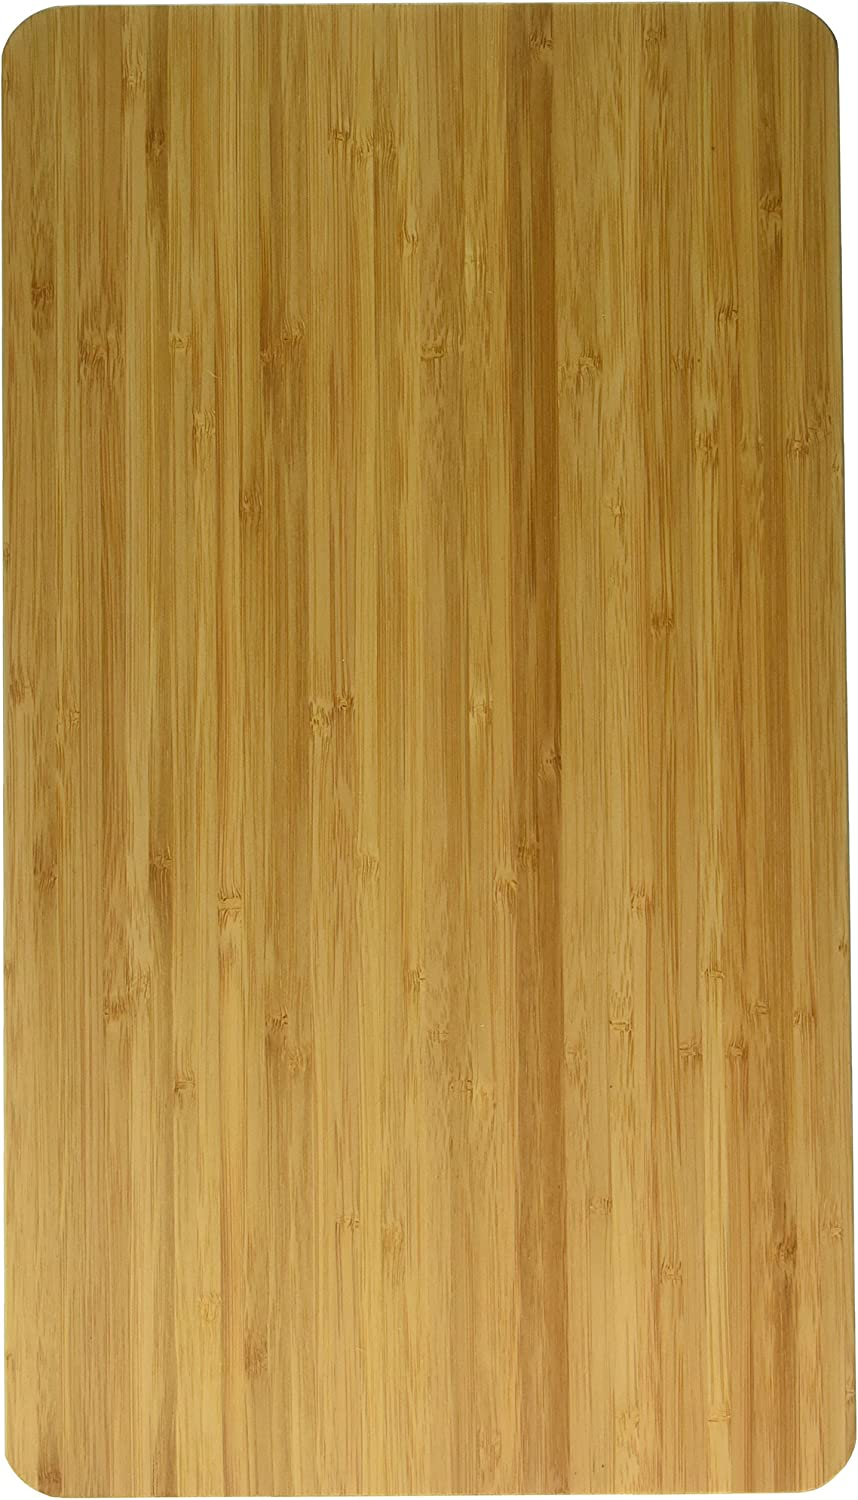 Breville BOV800CB Bamboo Cutting Board for the Smart Oven